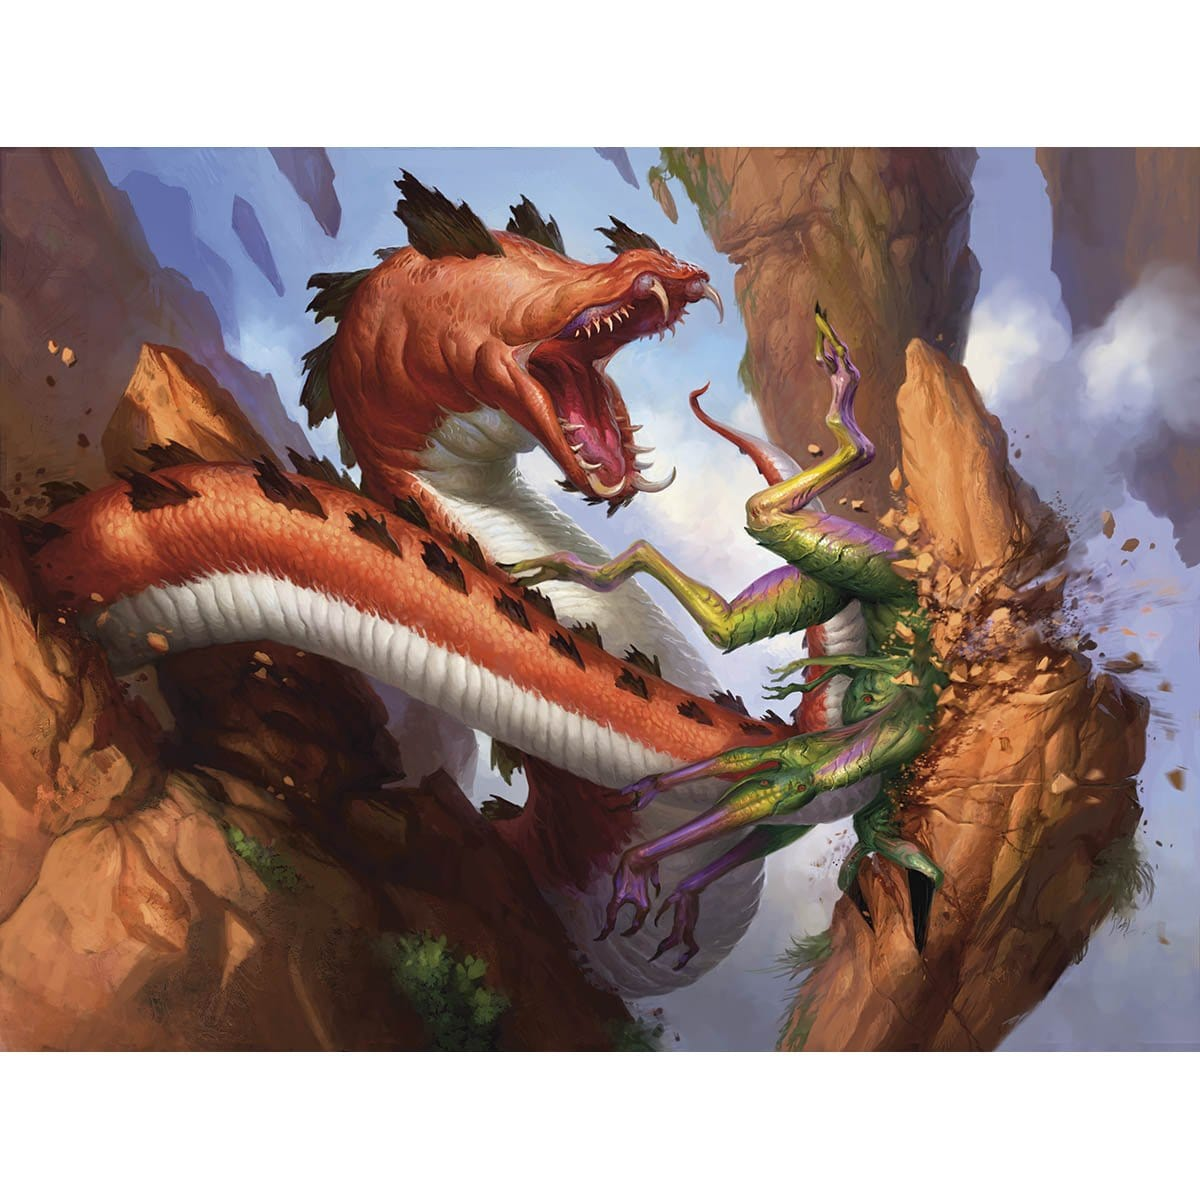 Belligerent Whiptail Print - Print - Original Magic Art - Accessories for Magic the Gathering and other card games